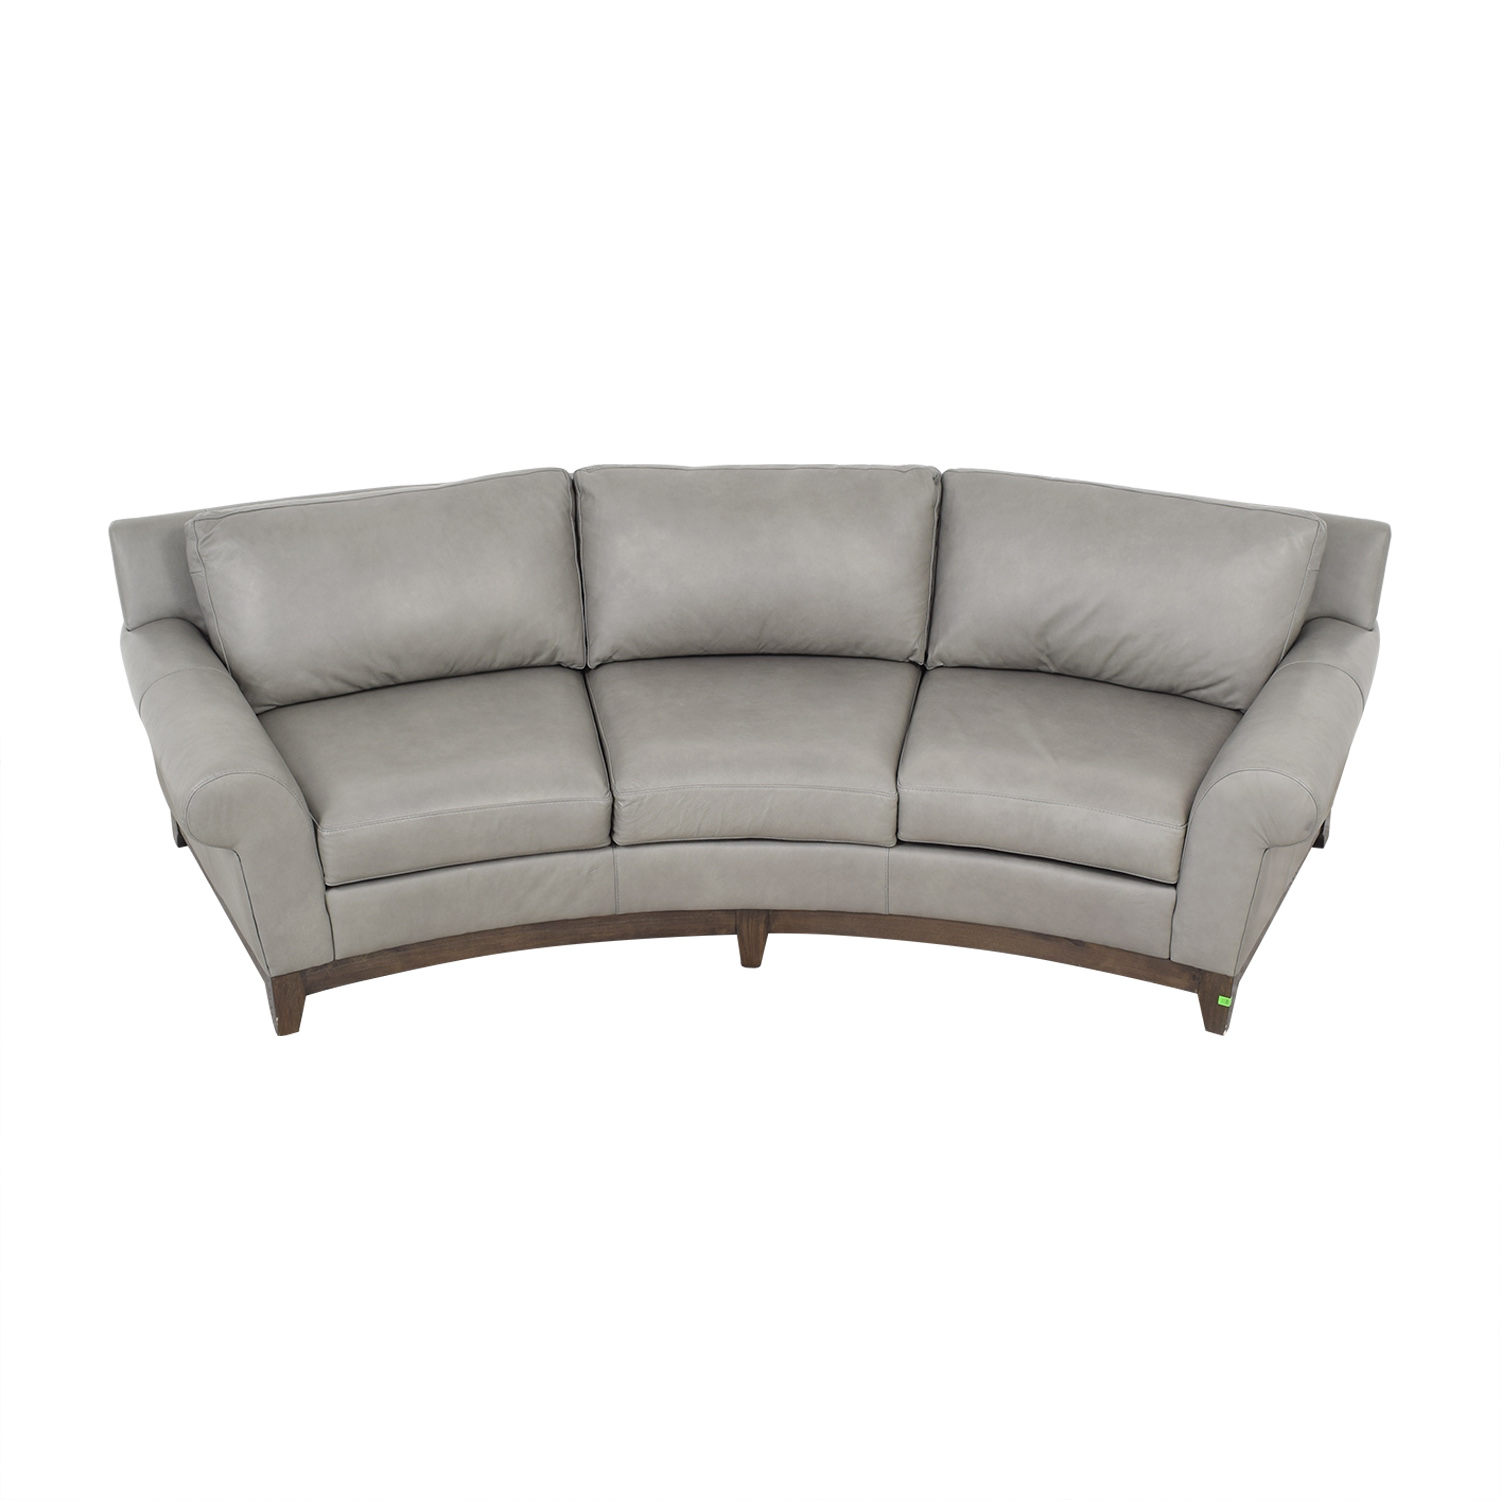 79 Off Elite Leather Company Elite Leather Company Curved Sofa Sofas